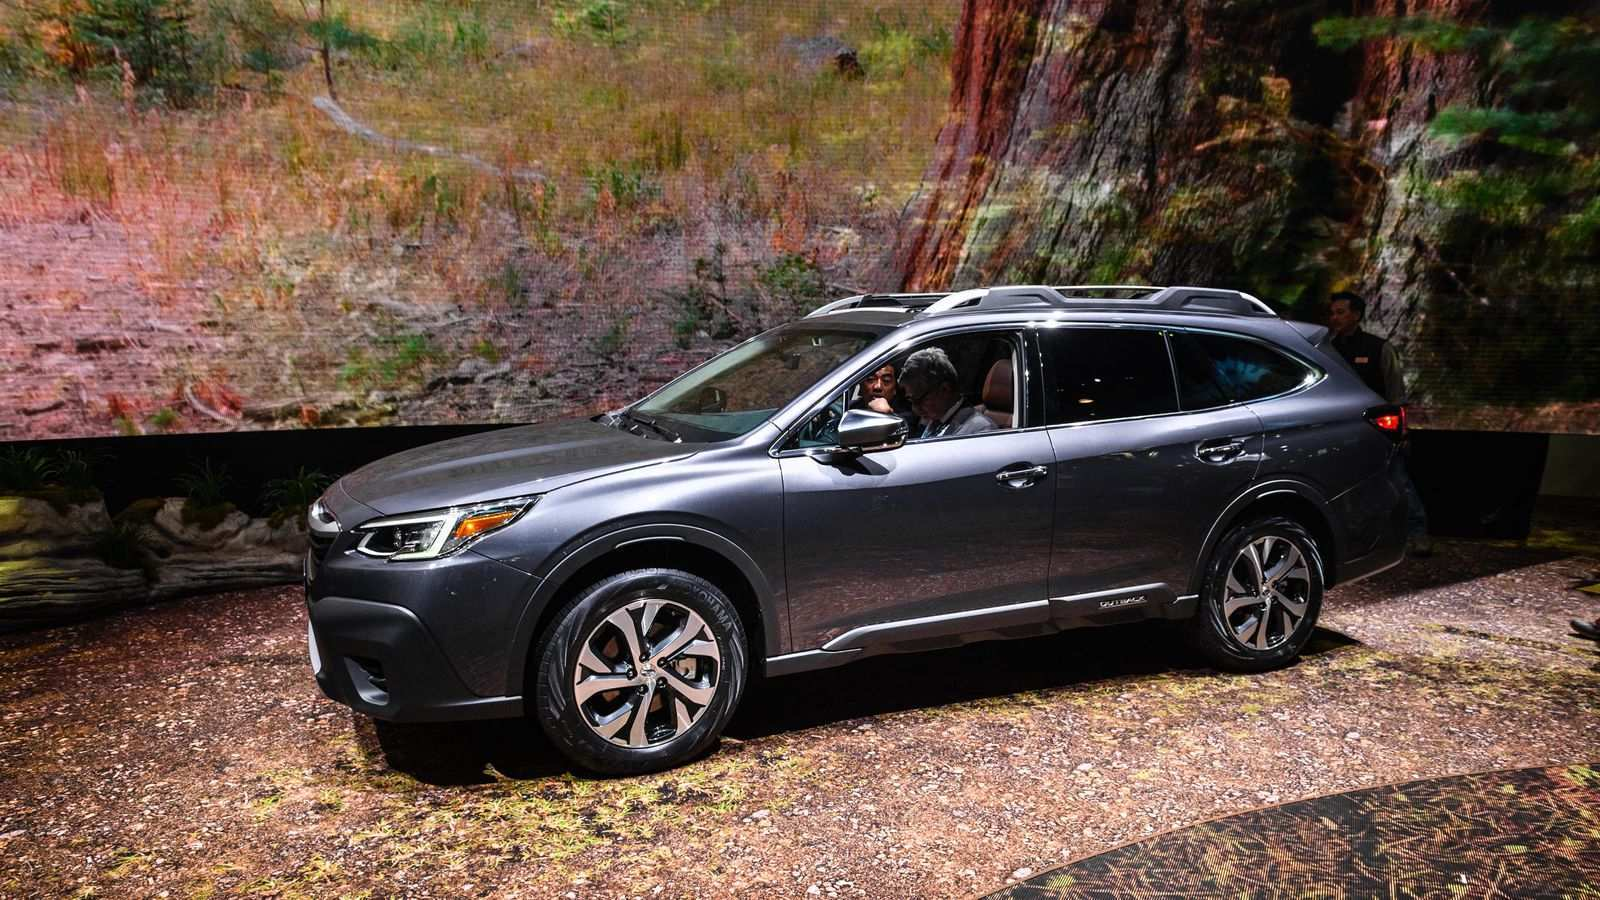 71 New Subaru Hybrid Outback 2020 Concept And Review